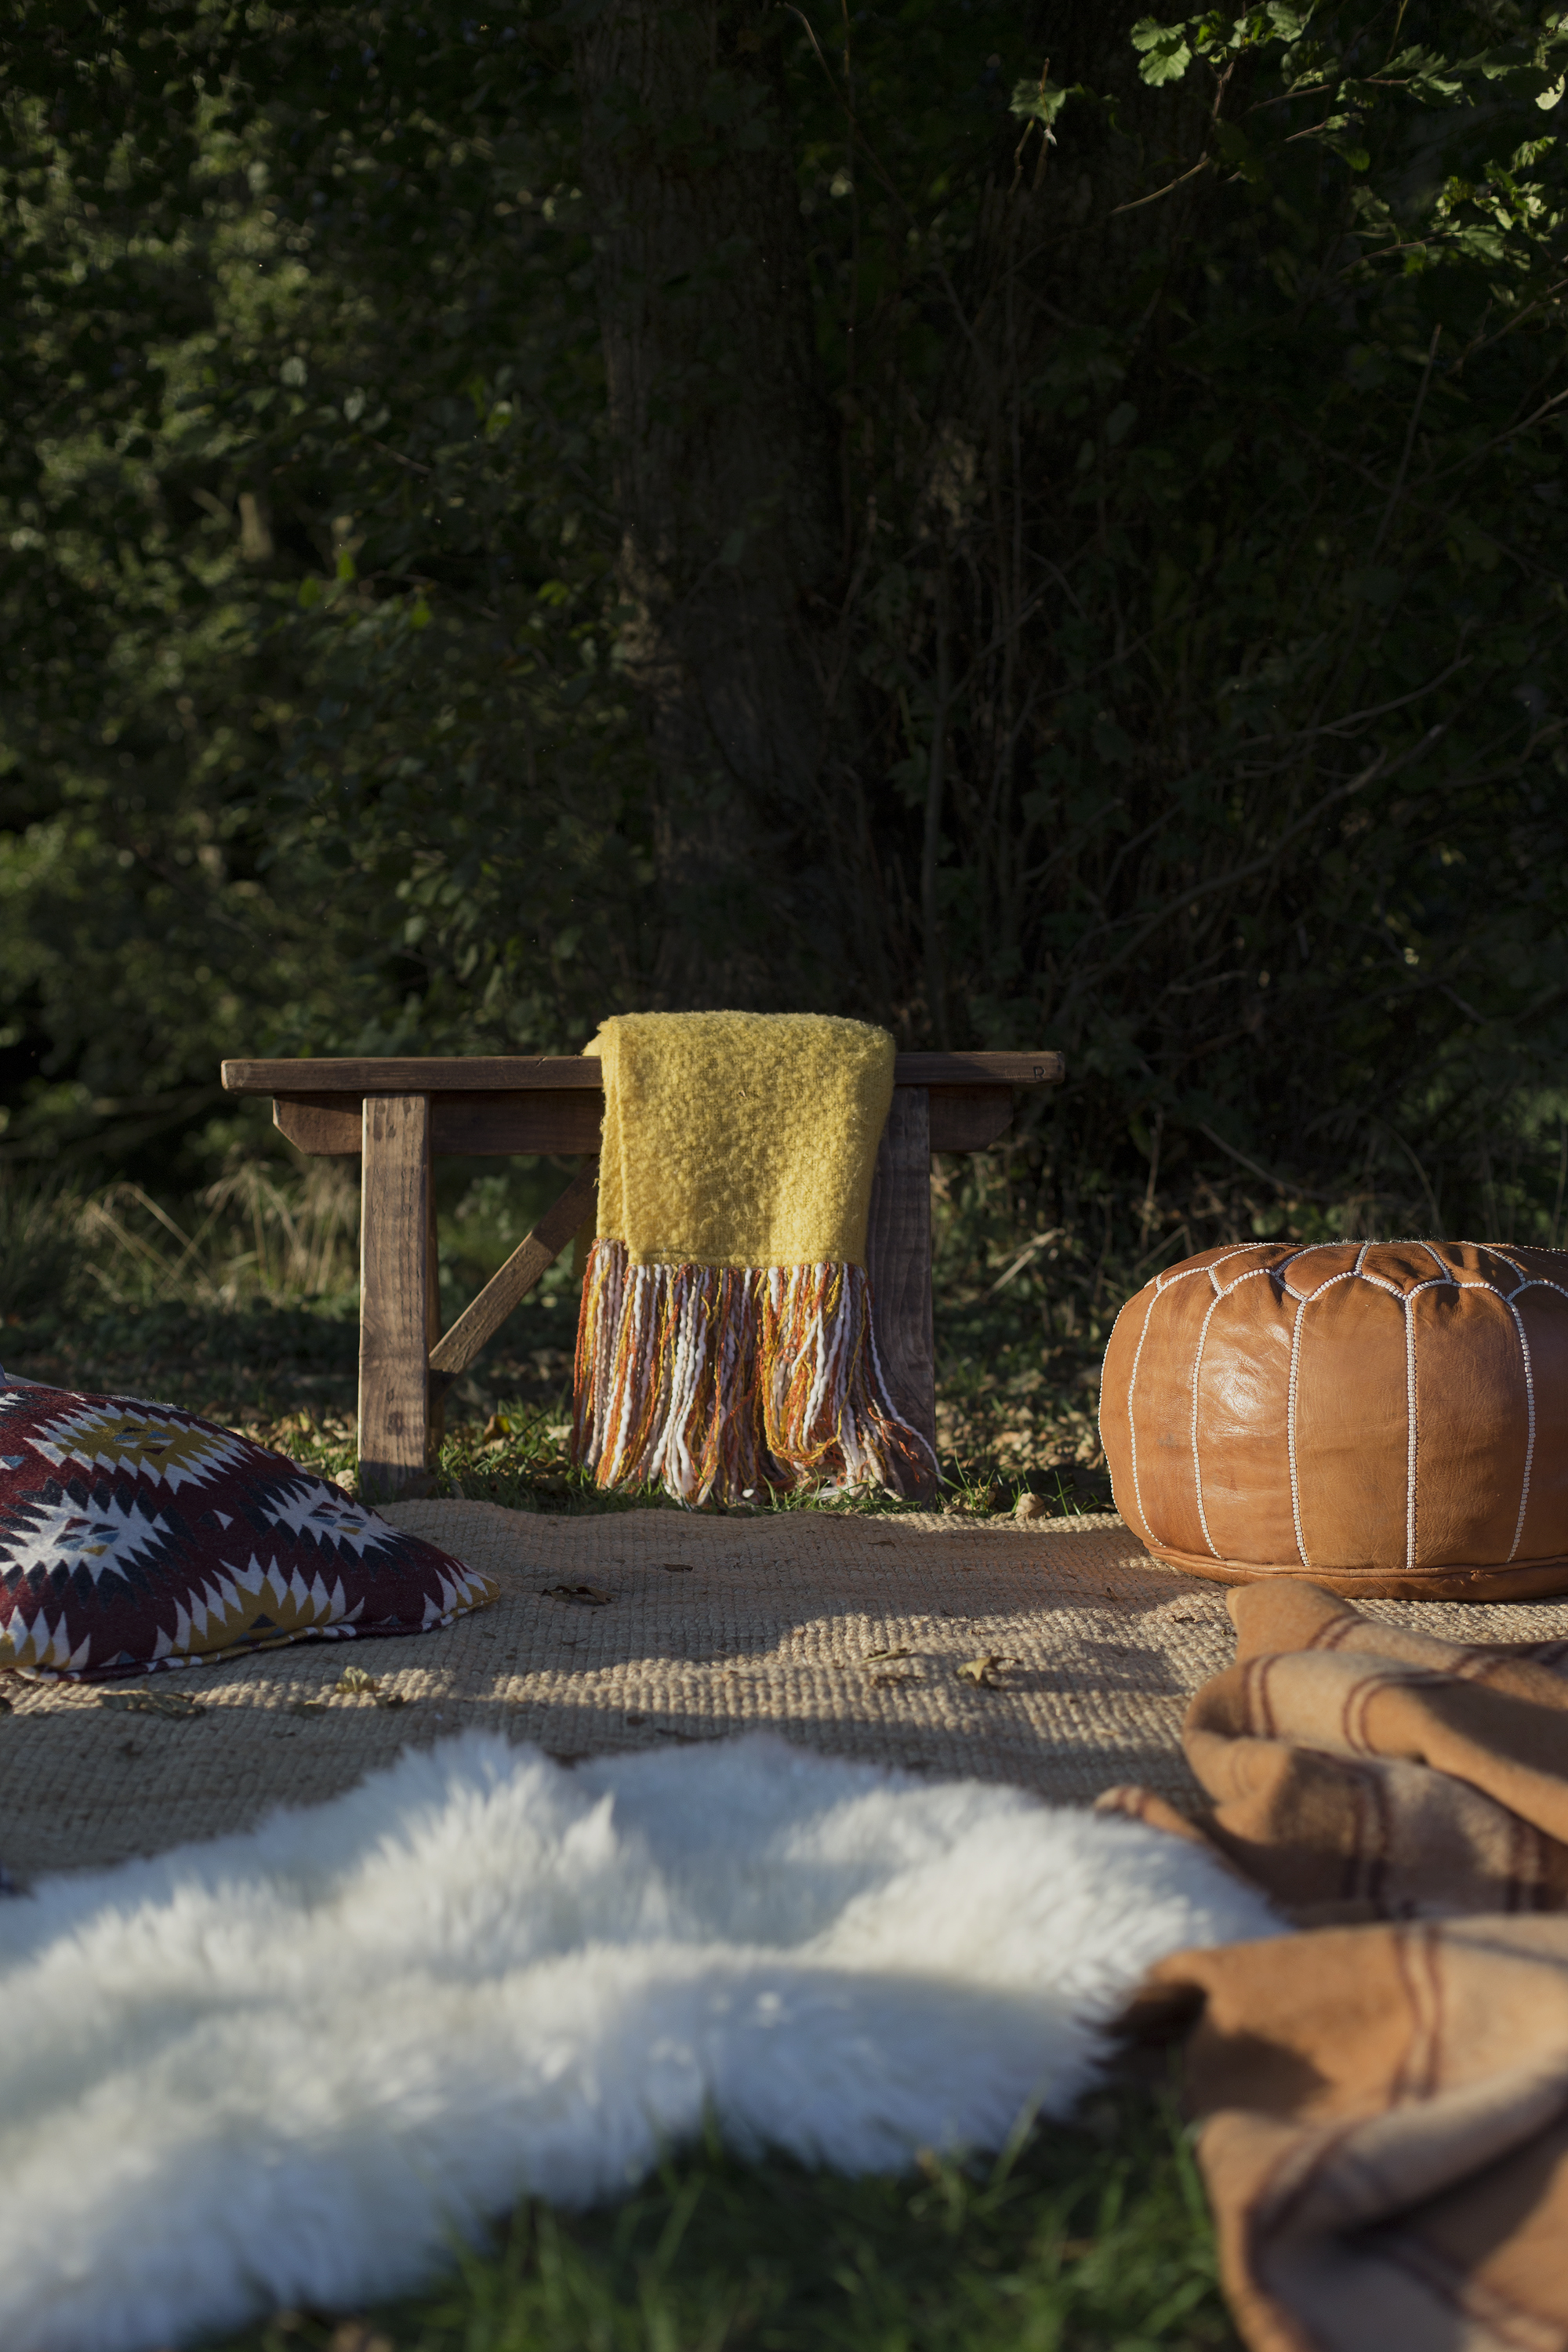 Outdoor rugs, morrocan pouffe, sheepskin and cushions under tree